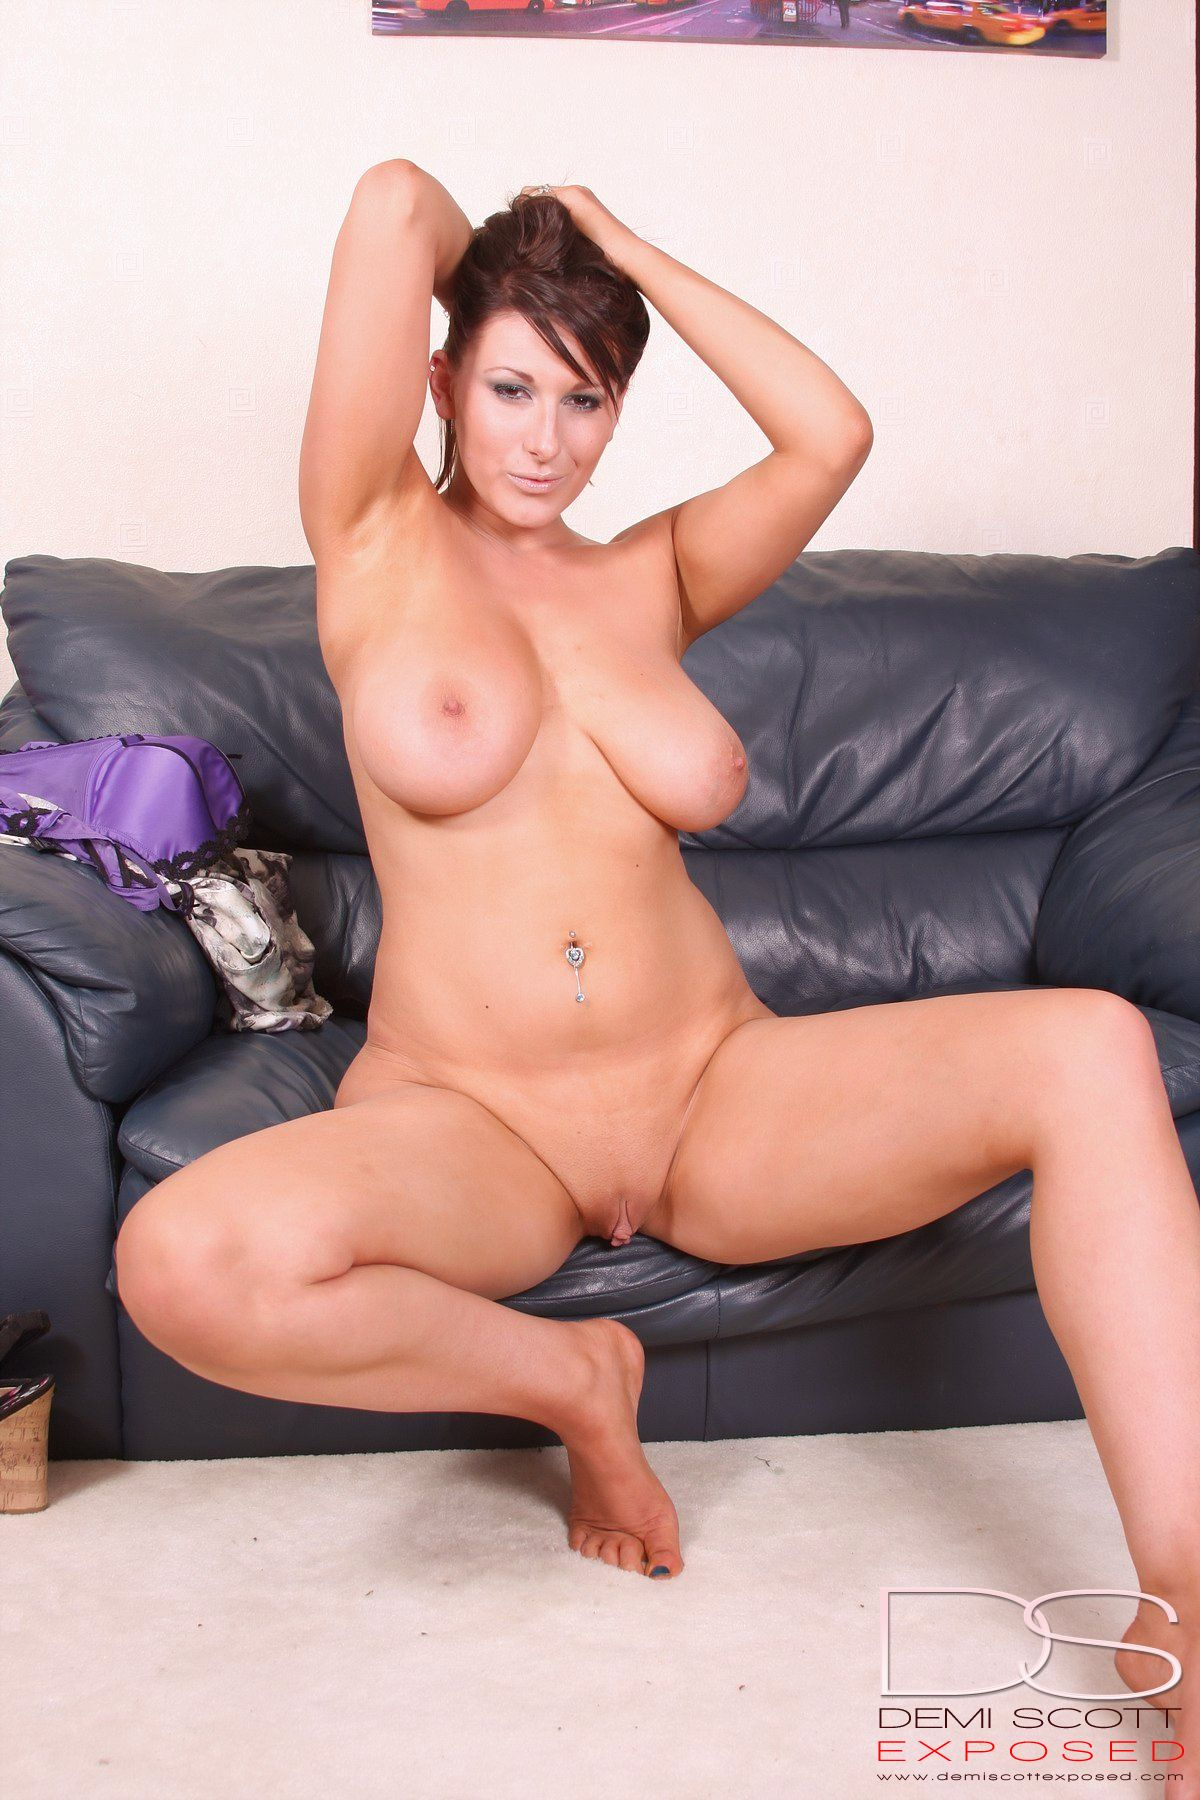 Simply excellent Demi scott nude You will